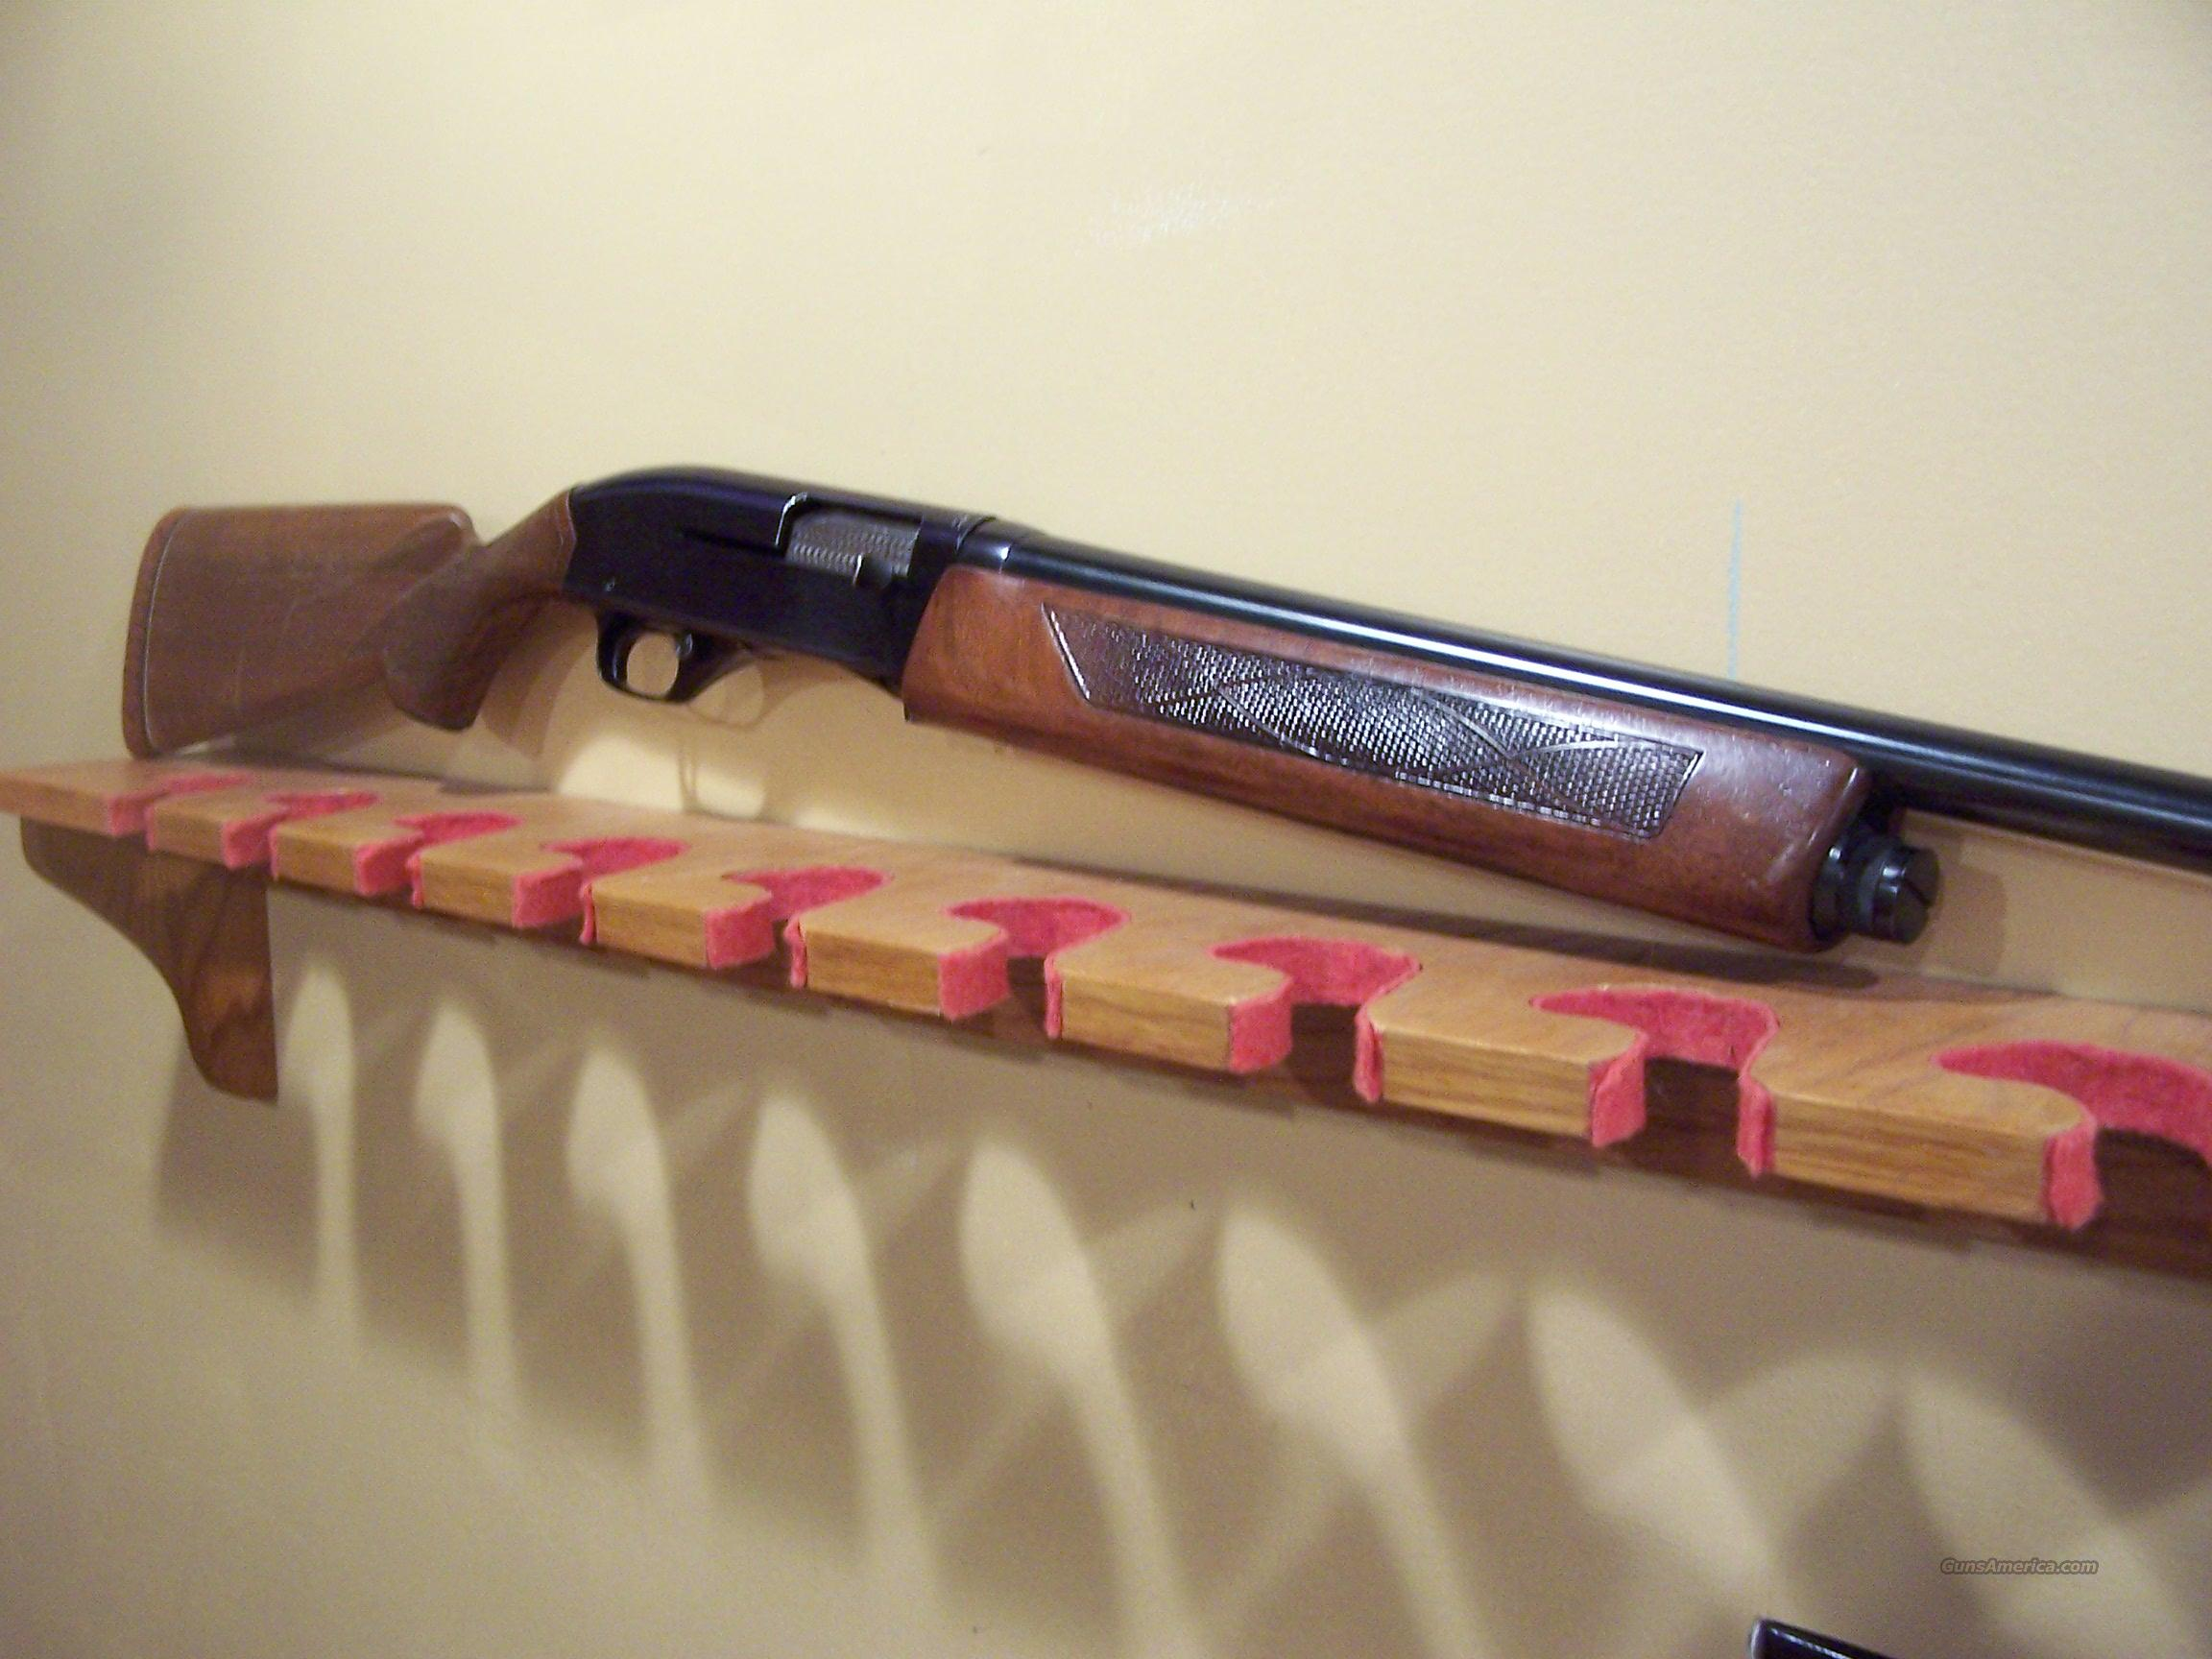 NICE WINCHESTER MODEL 1400 MKII 12 GAUGE AUTOLOADER !  Guns > Shotguns > Winchester Shotguns - Modern > Autoloaders > Hunting